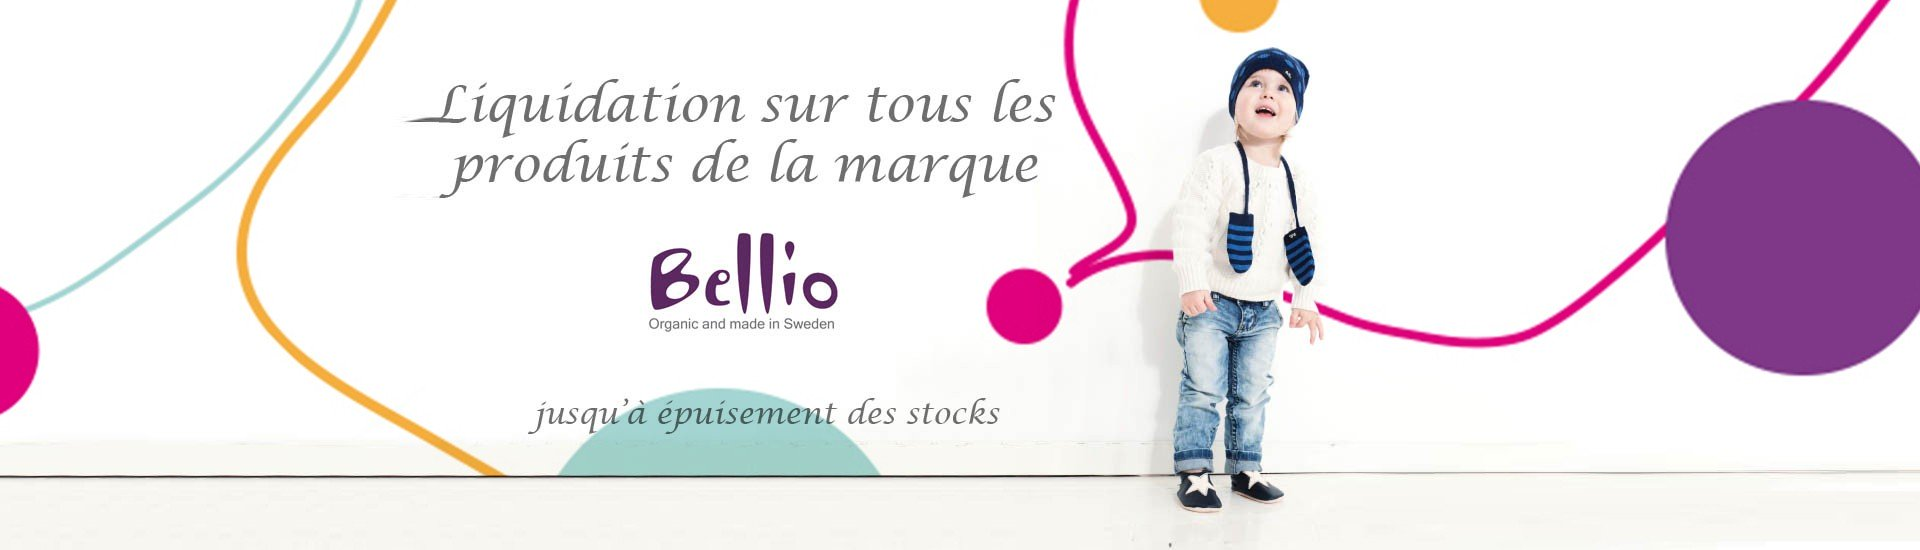 Liquidation Bellio 2